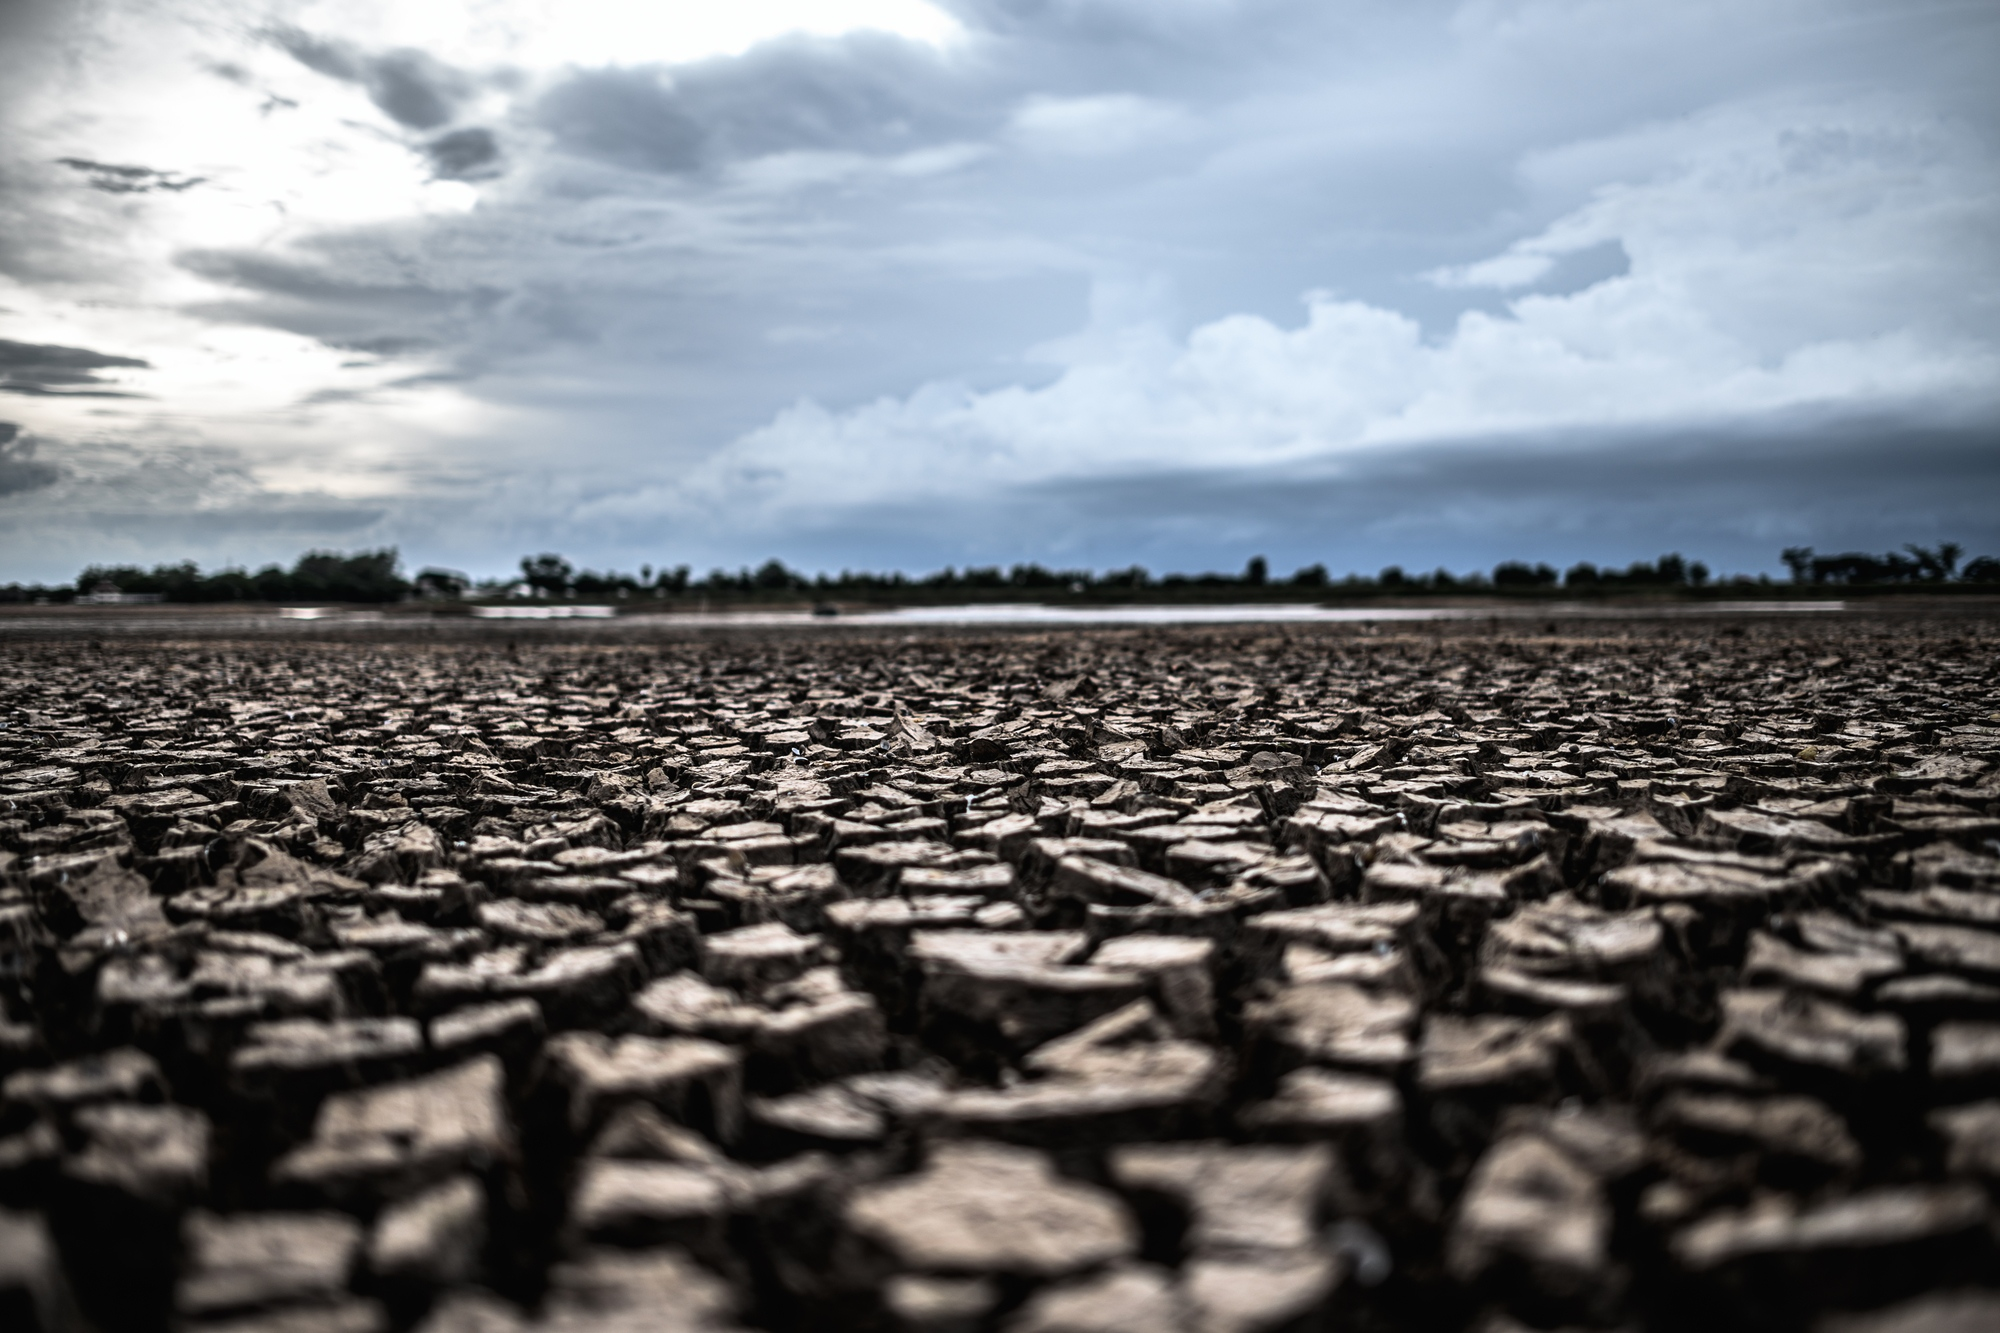 Arid land with dry and cracked ground